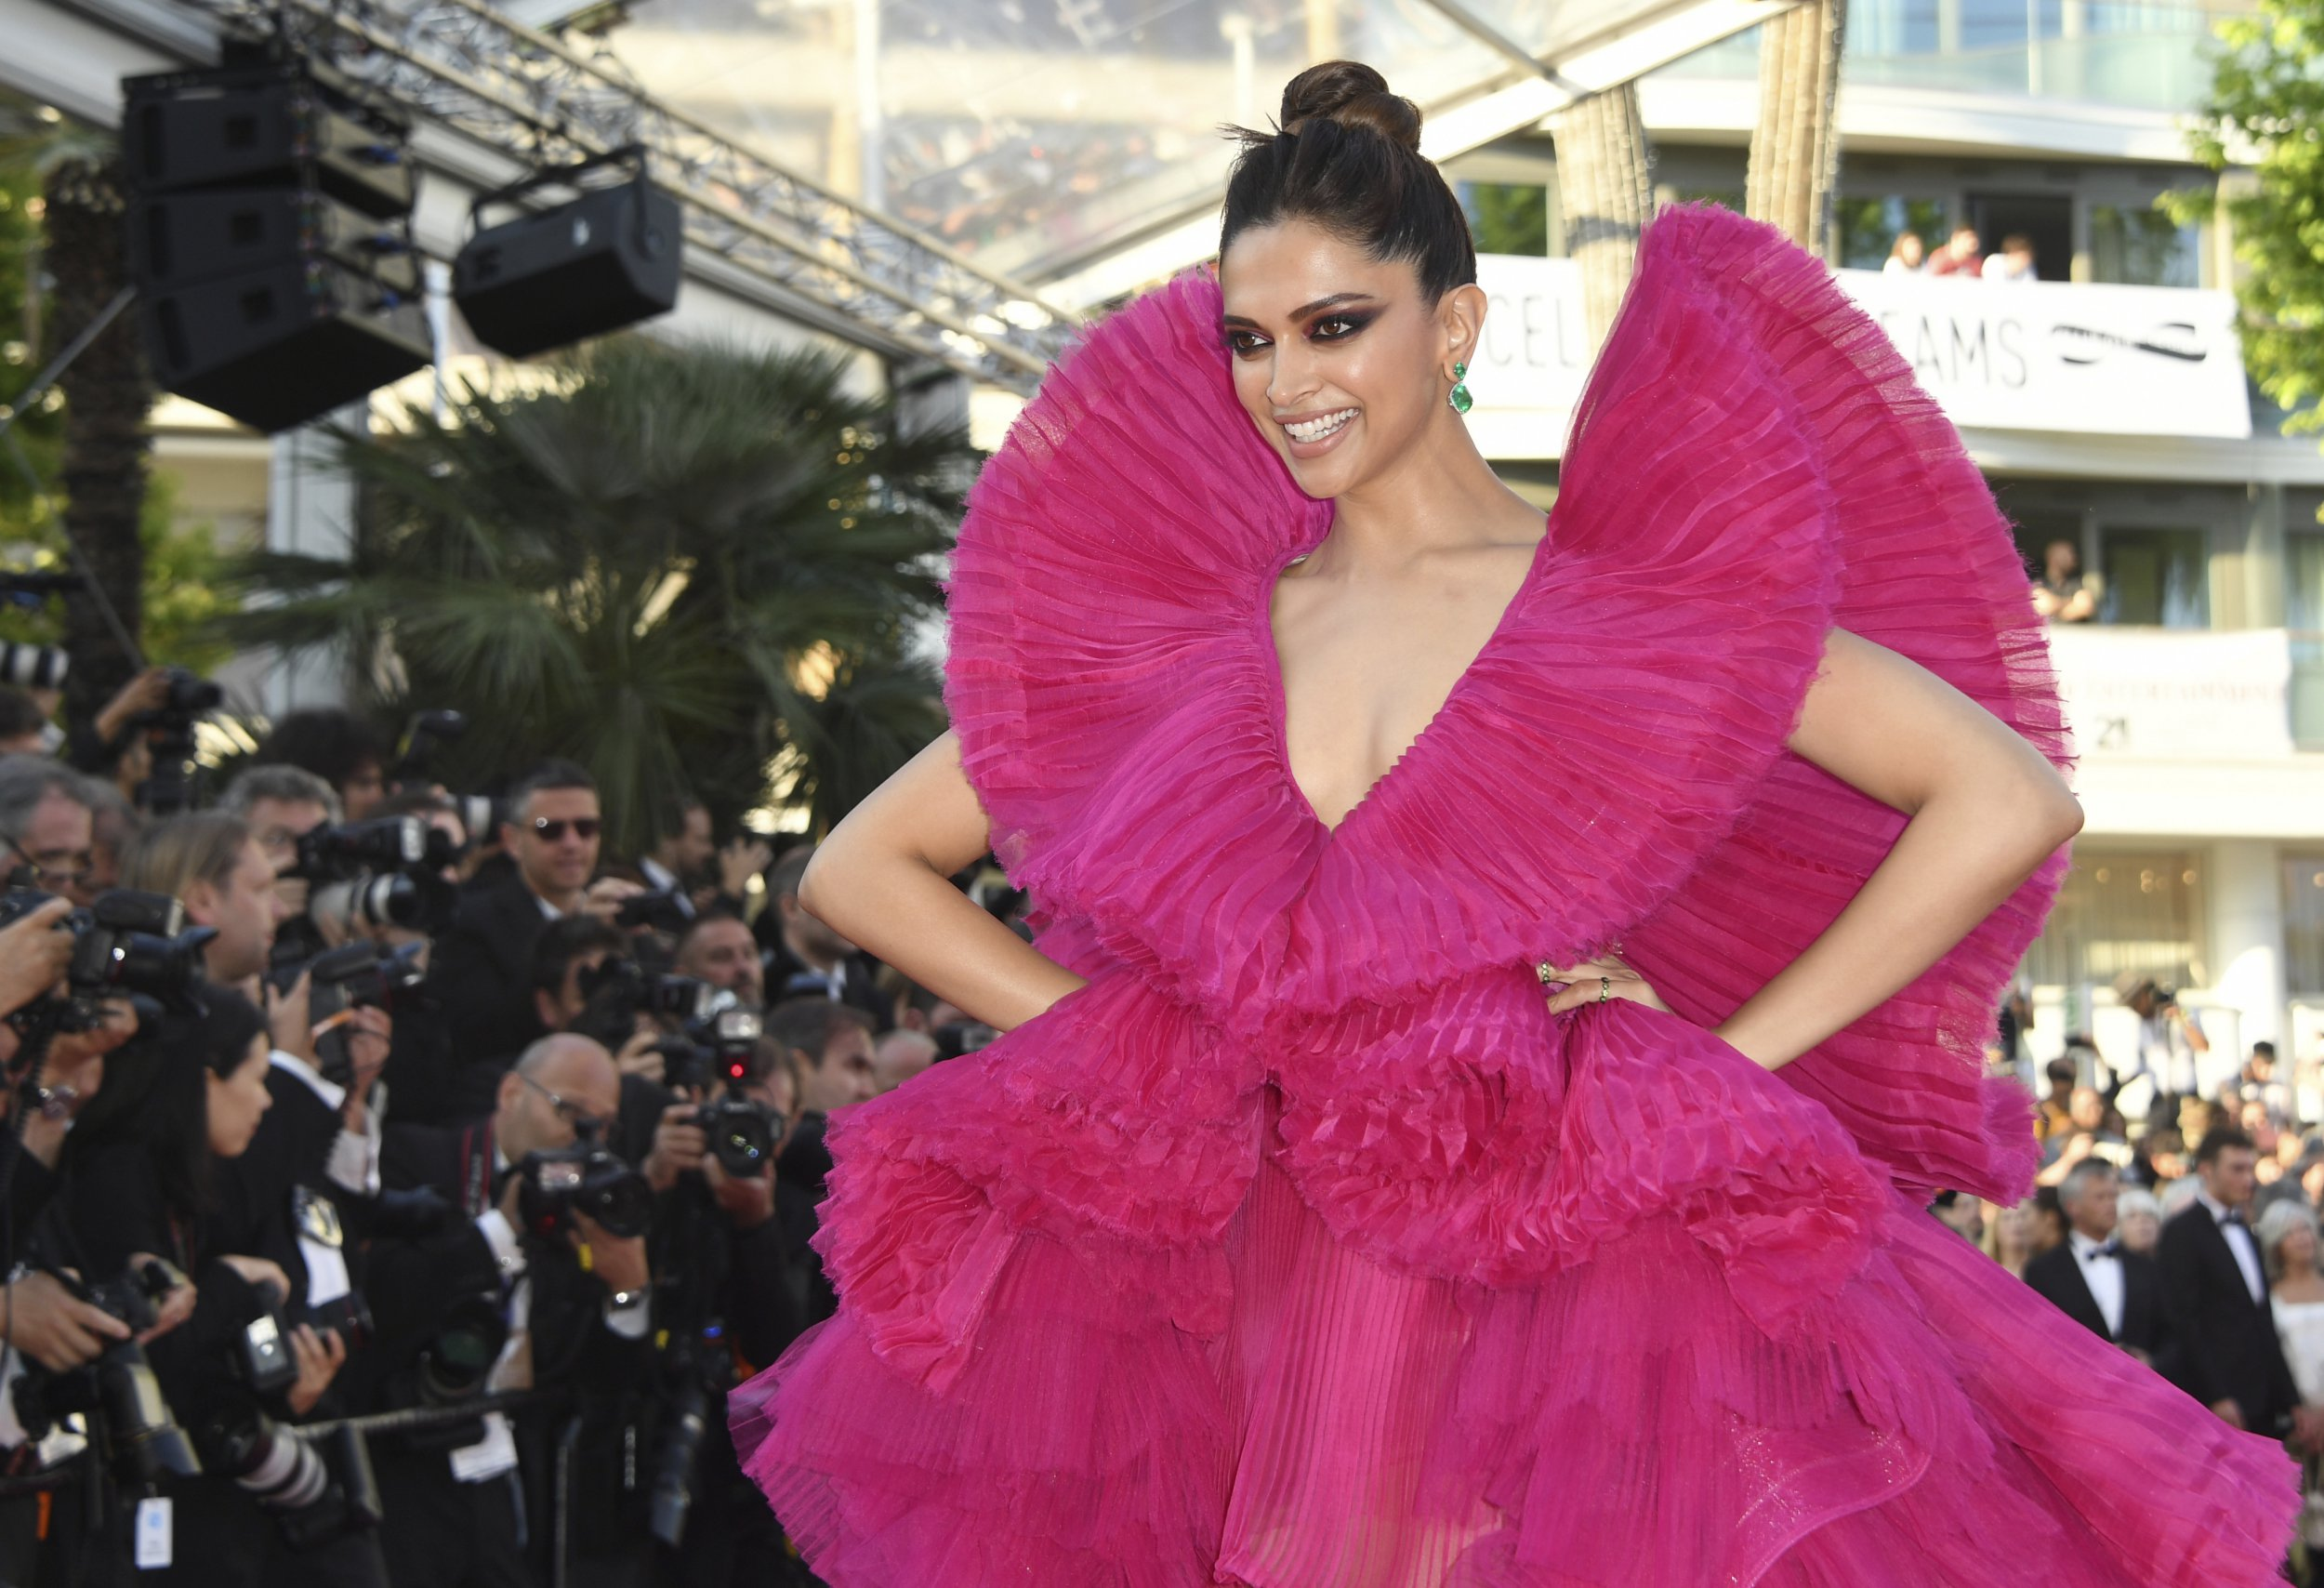 """Actress Deepika Padukone wears a pink gown by Ashi Studio at the premiere of """"Ash Is The Purest White"""" at the 71st international film festival, Cannes, southern France, Friday, May 11, 2018. (Photo by Arthur Mola/Invision/AP)"""